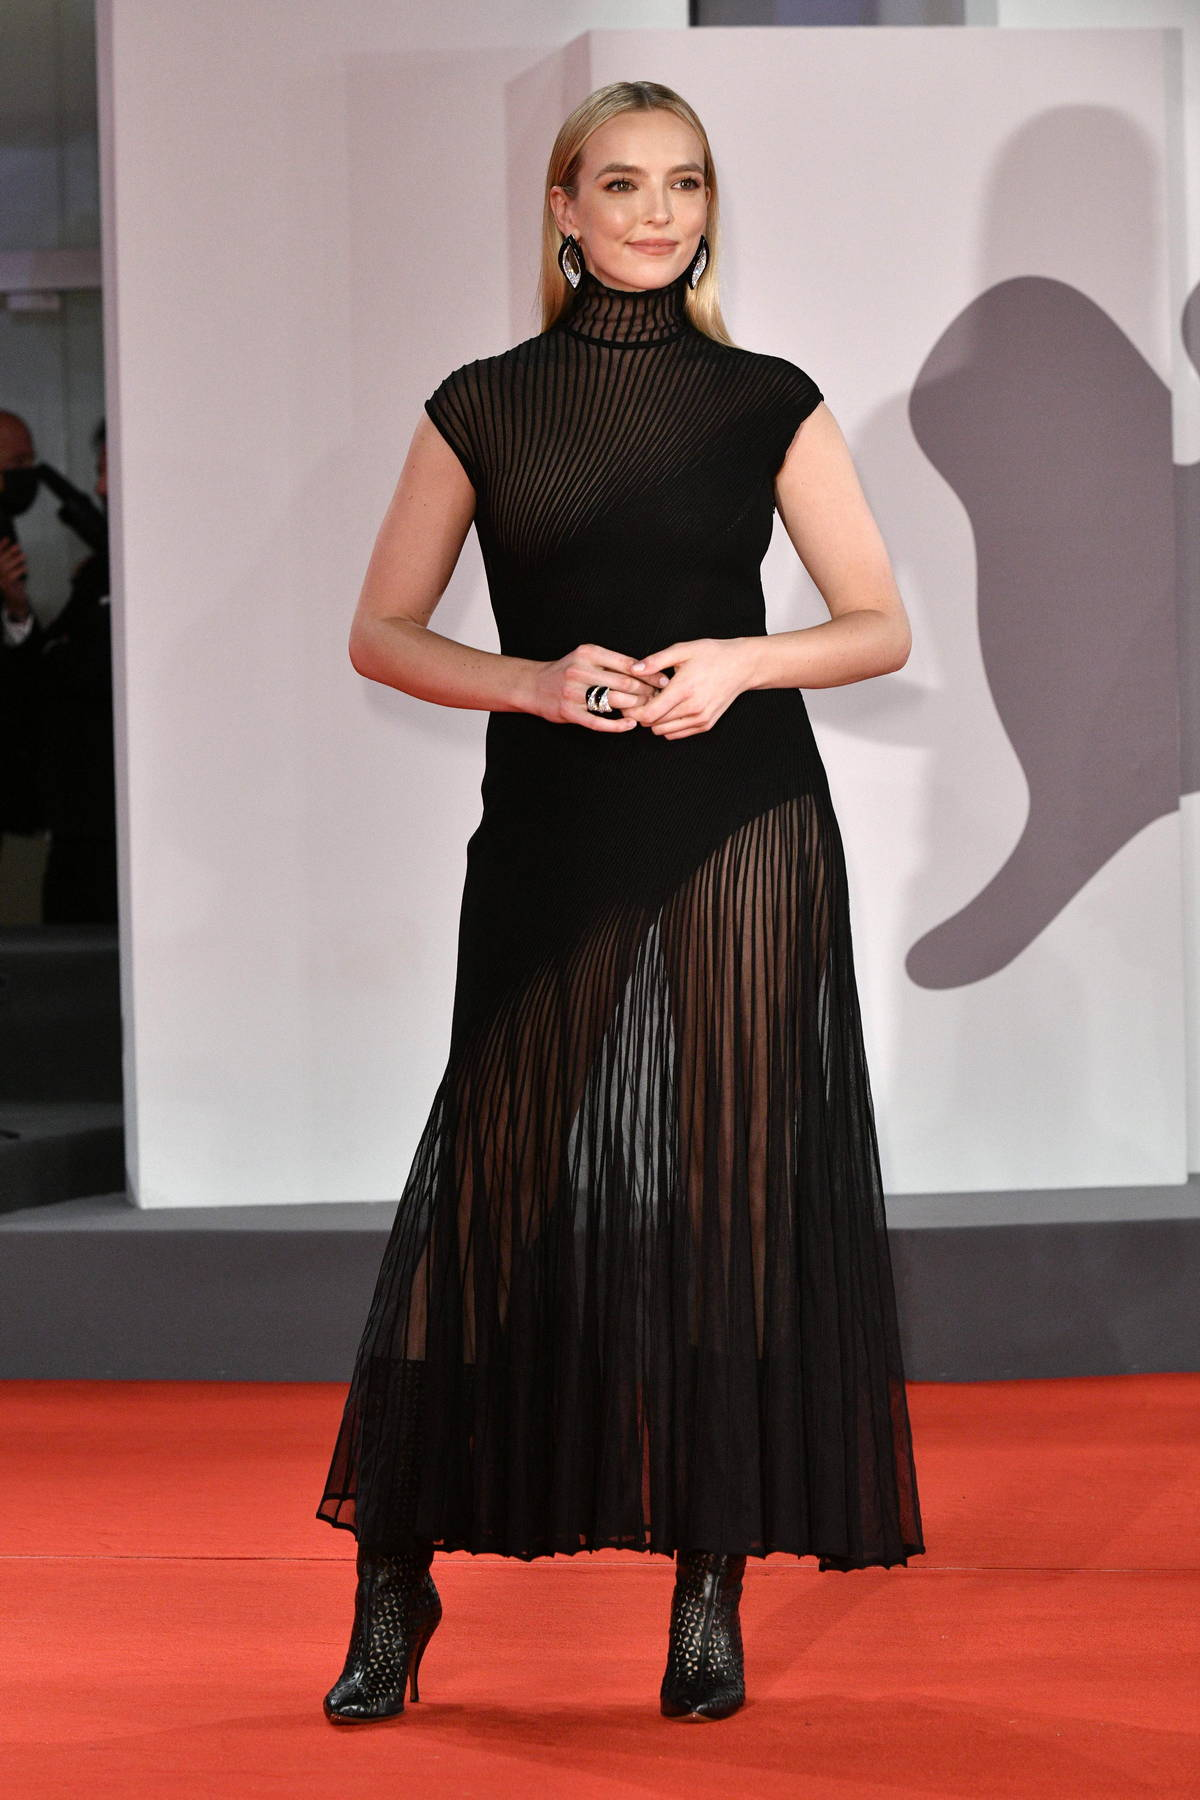 Jodie Comer attends the Premiere of 'The Last Duel' during the 78th Venice International Film Festival in Venice, Italy